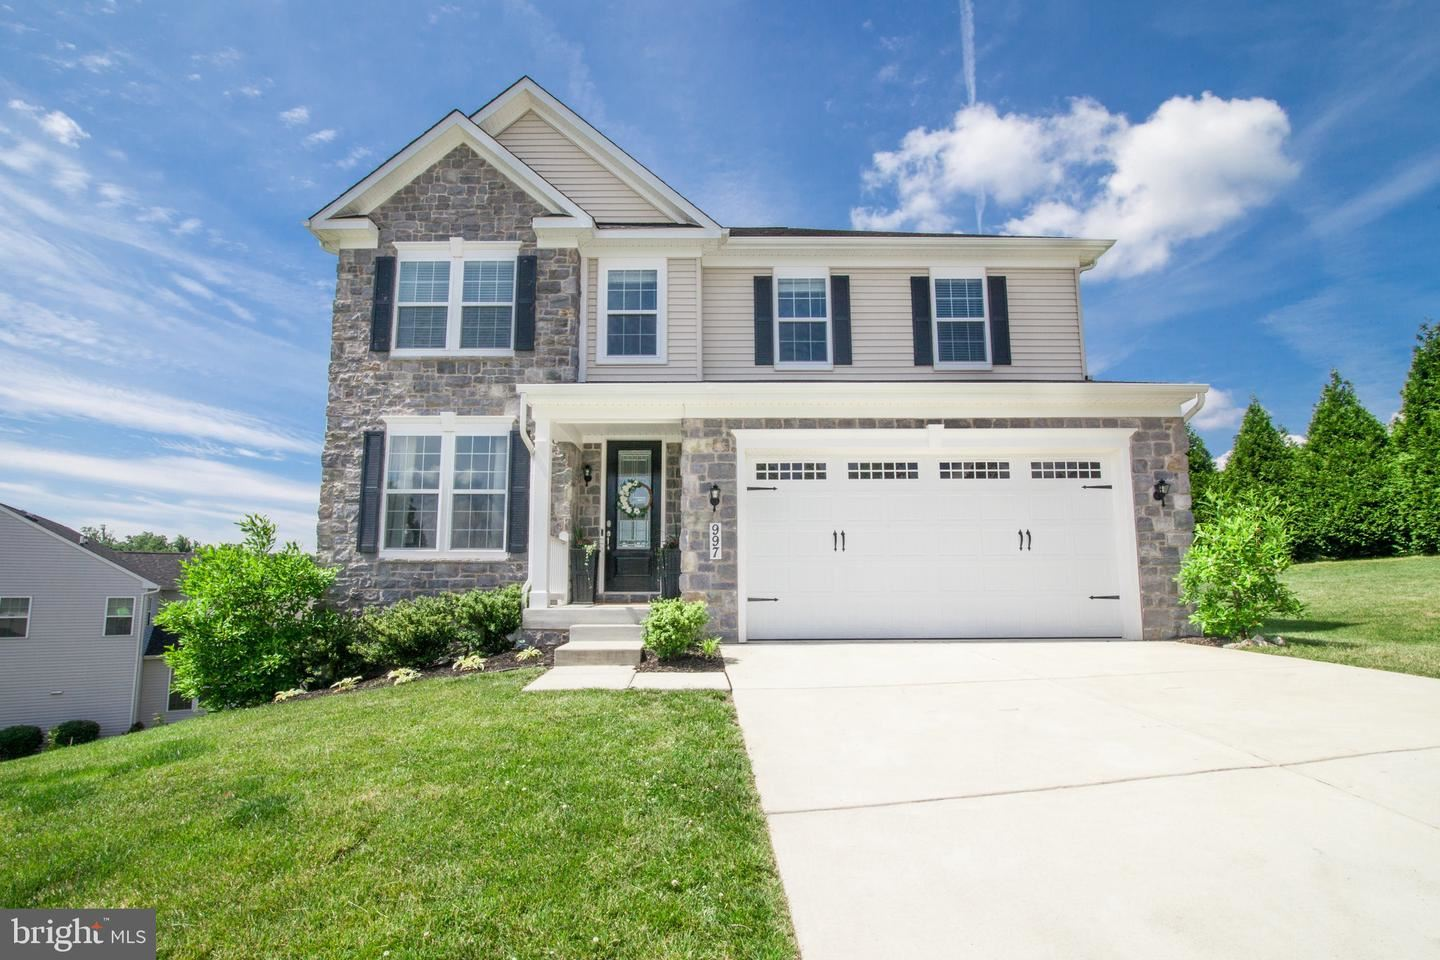 997 SADDLE VIEW WAY, Forest Hill, MD 21050 - MLS#: MDHR2001362